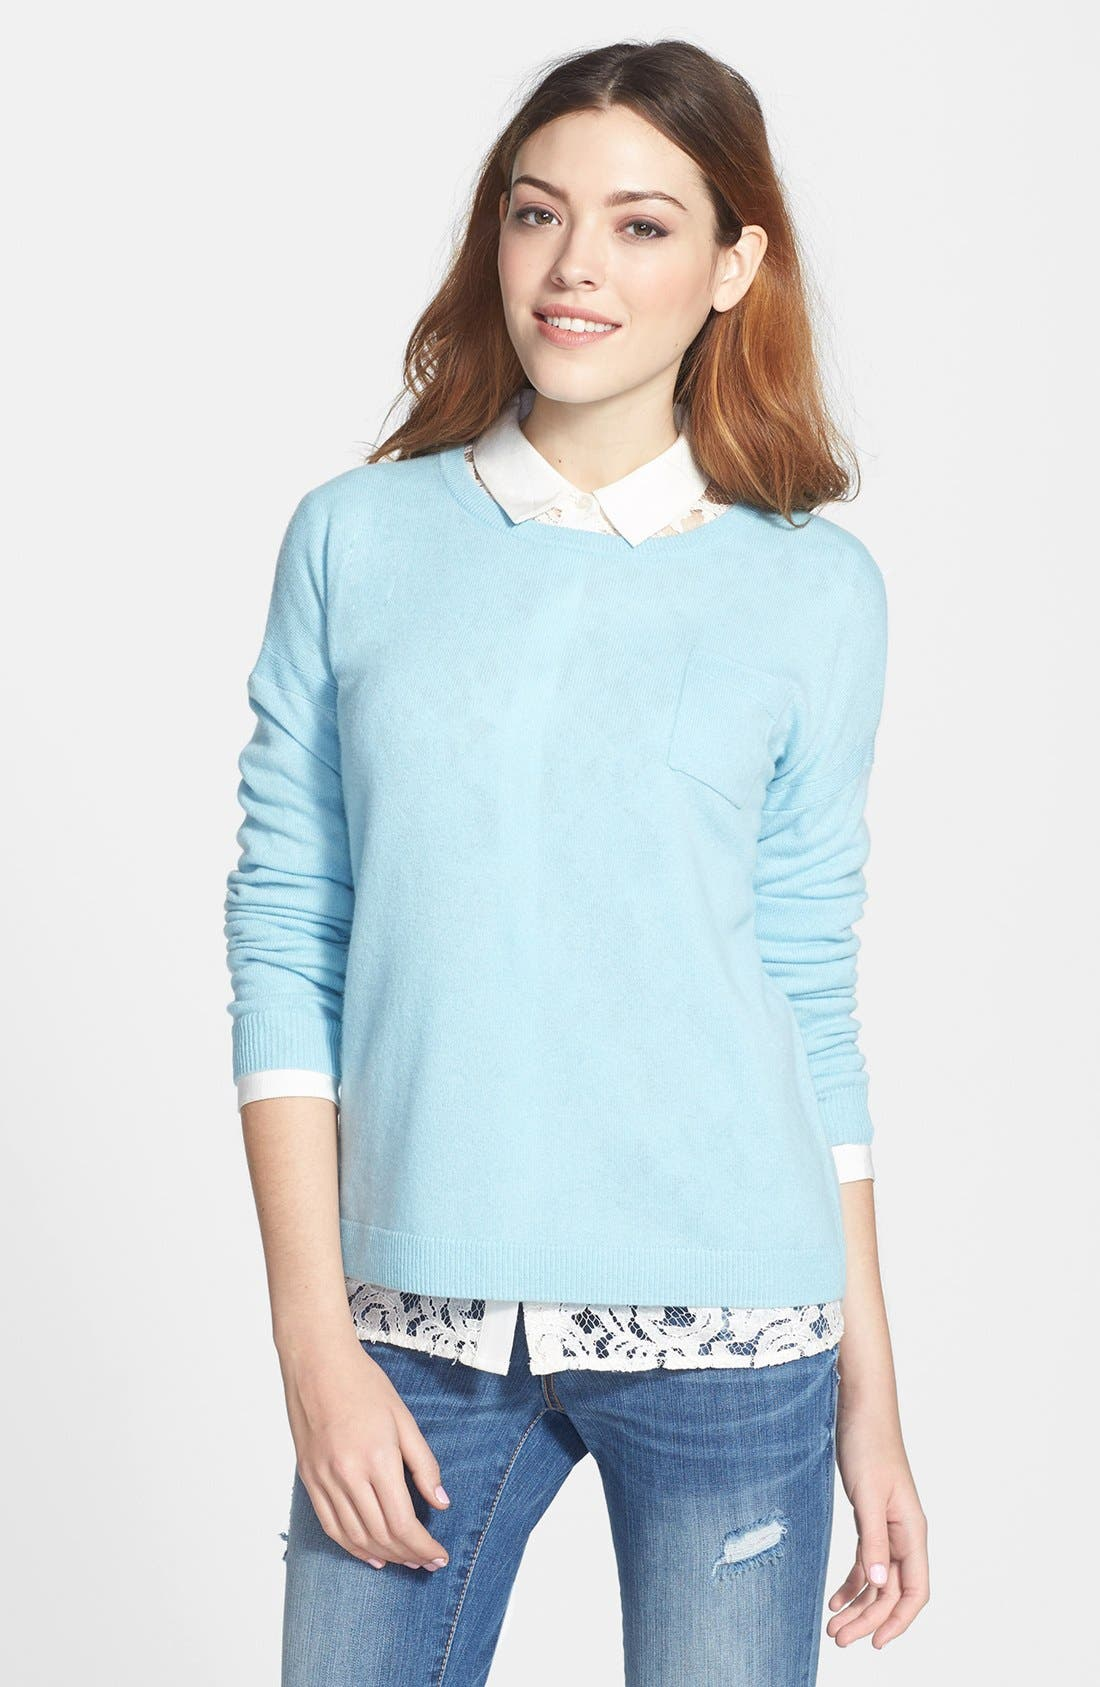 Main Image - Halogen® Lightweight Cashmere Crewneck Sweater with Pocket